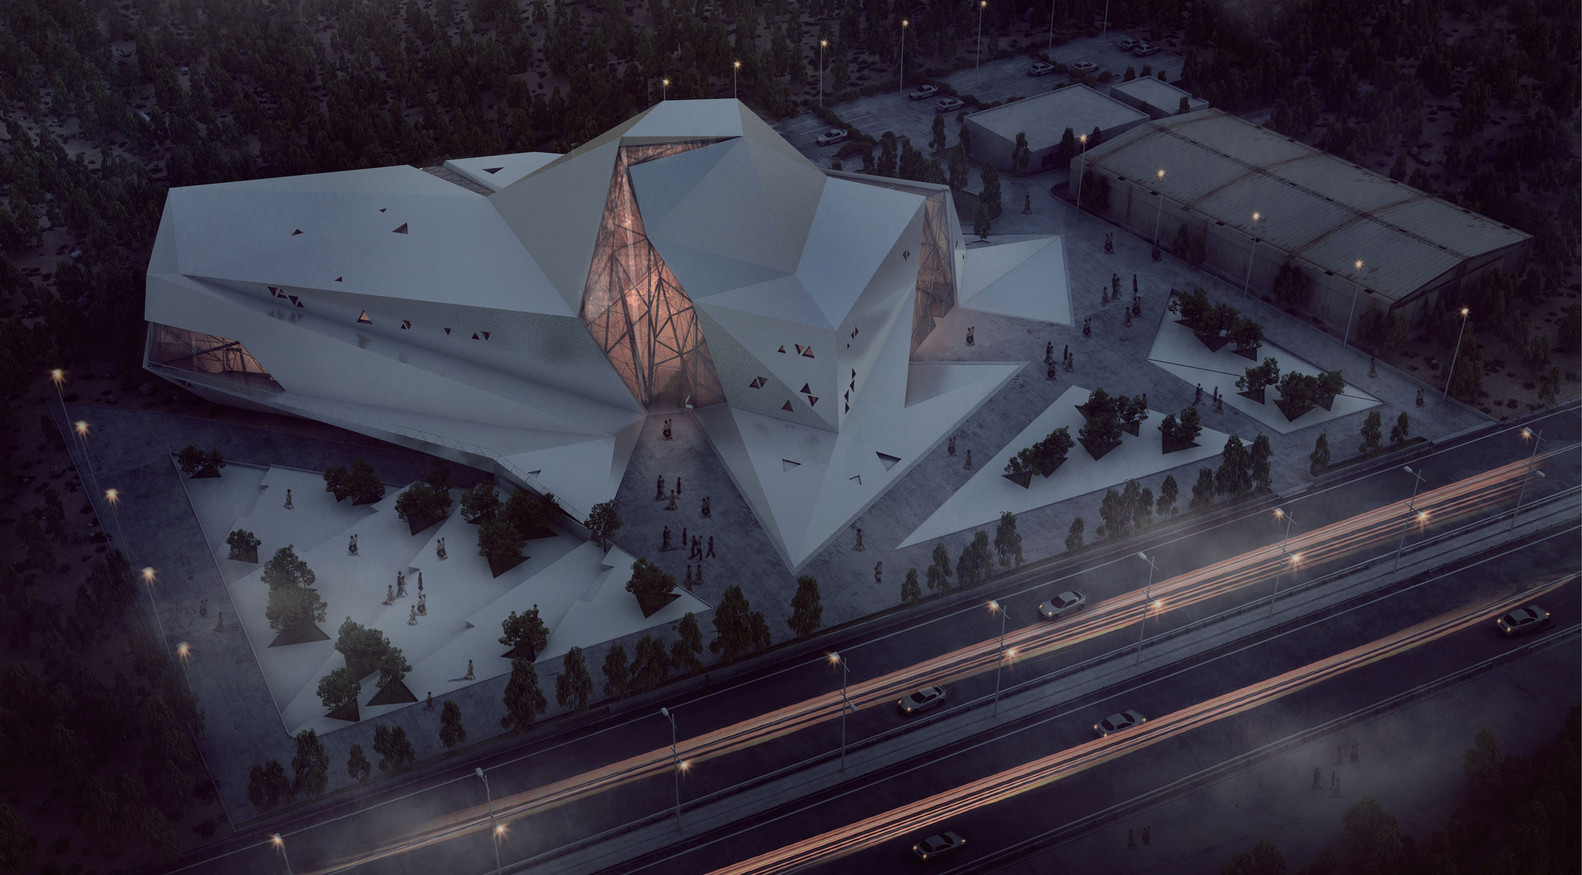 Polour Rock Gym van New Wave Architecture - Render Ster van de Week